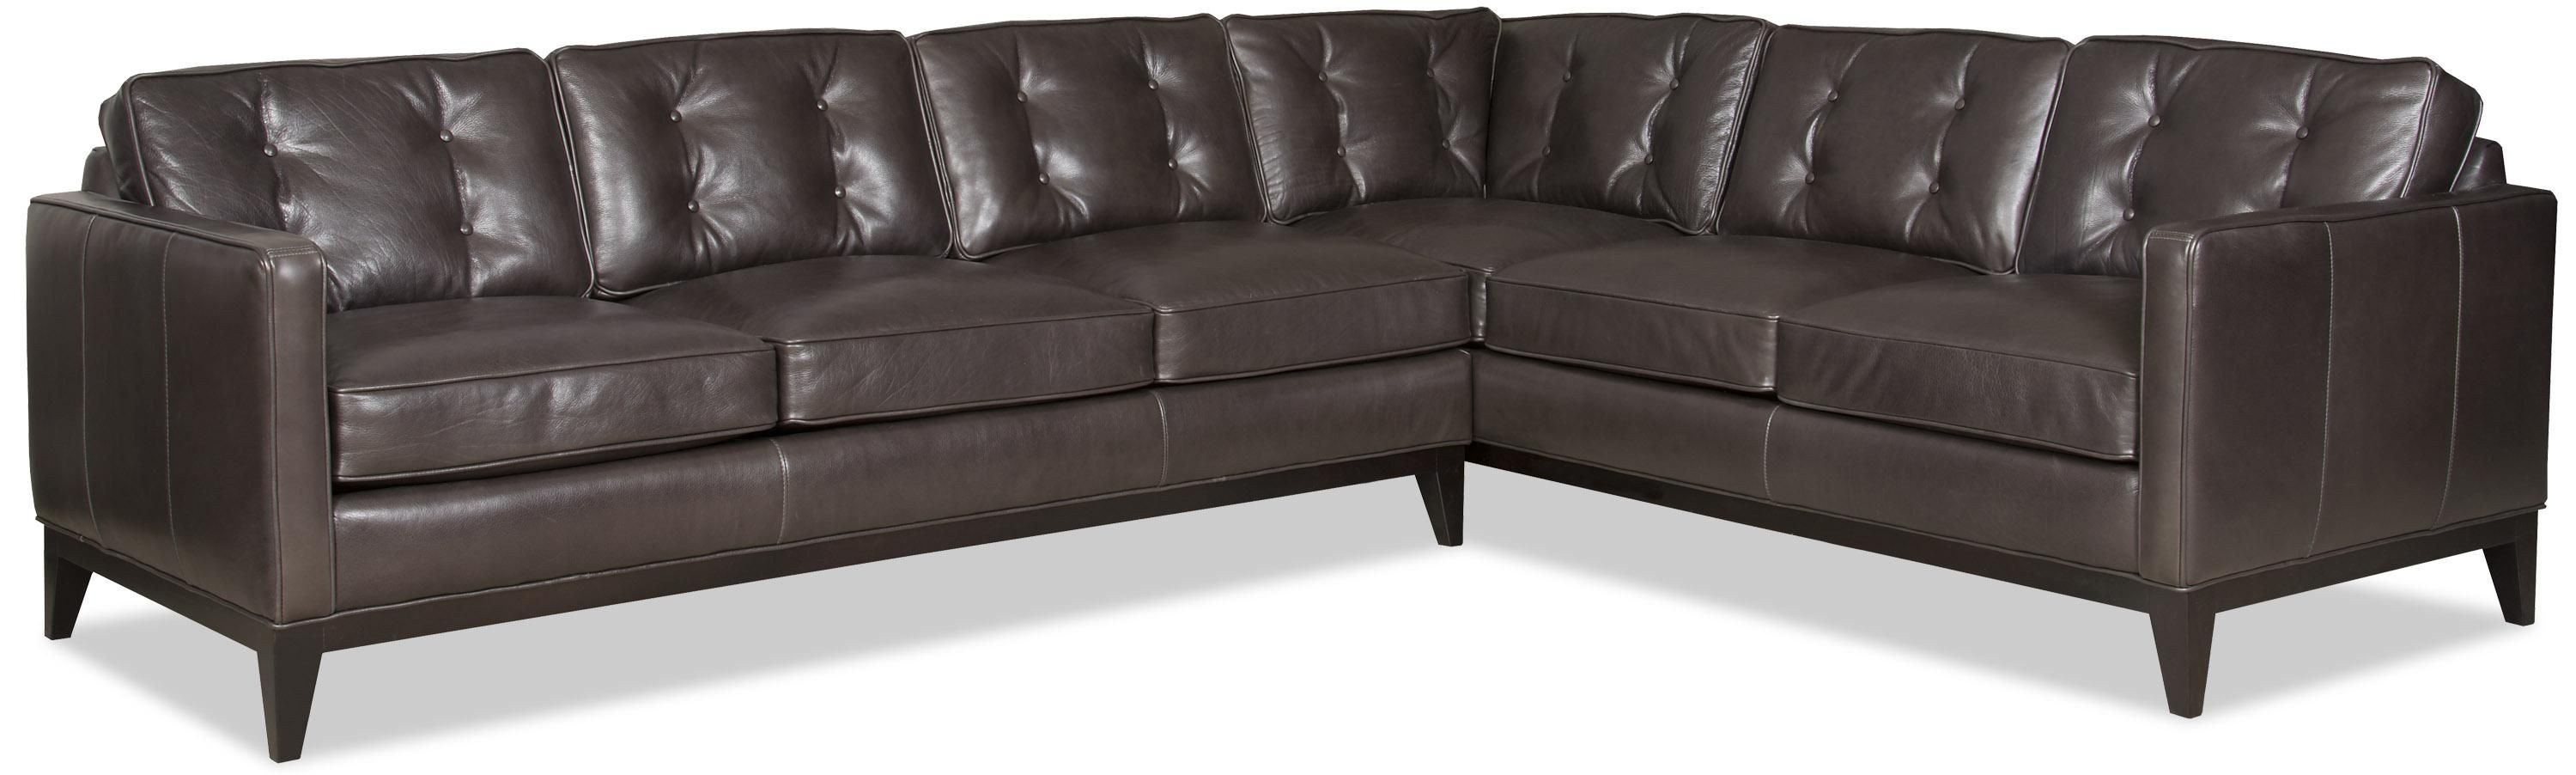 Incredible Zev Two Piece Sectional Sofa By Bradington Young Ideas For Andrewgaddart Wooden Chair Designs For Living Room Andrewgaddartcom